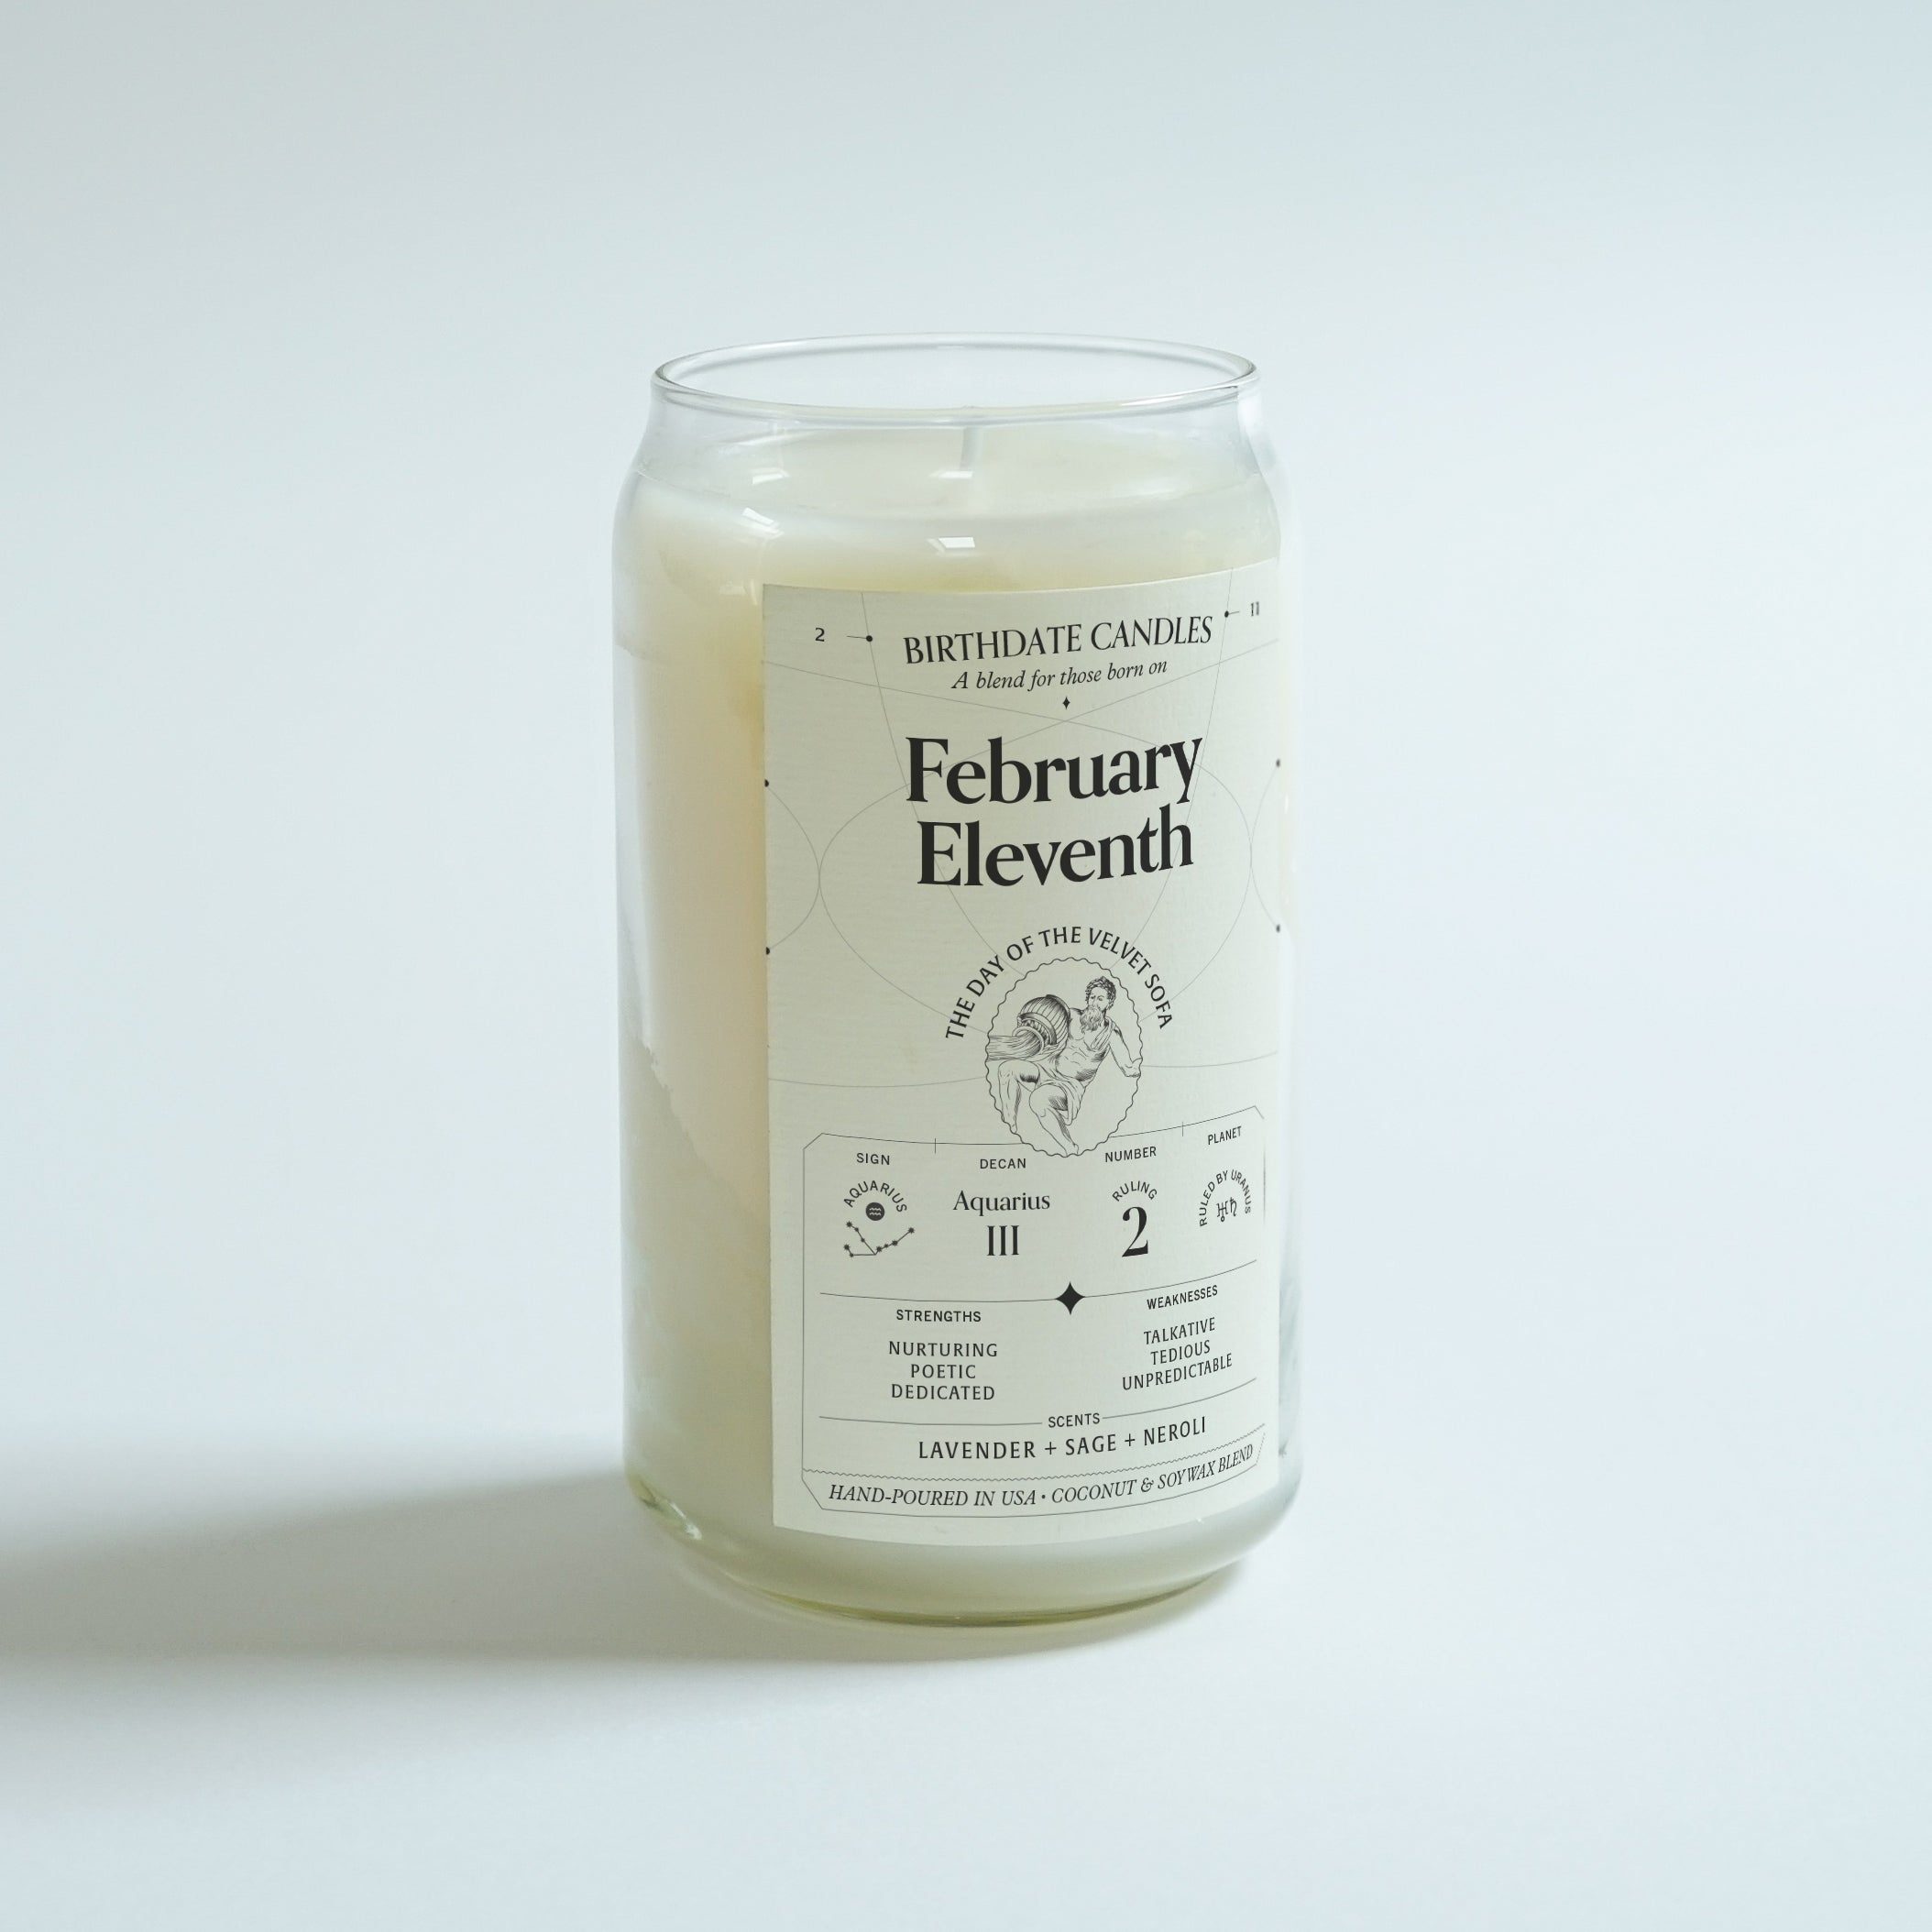 The February Eleventh Candle